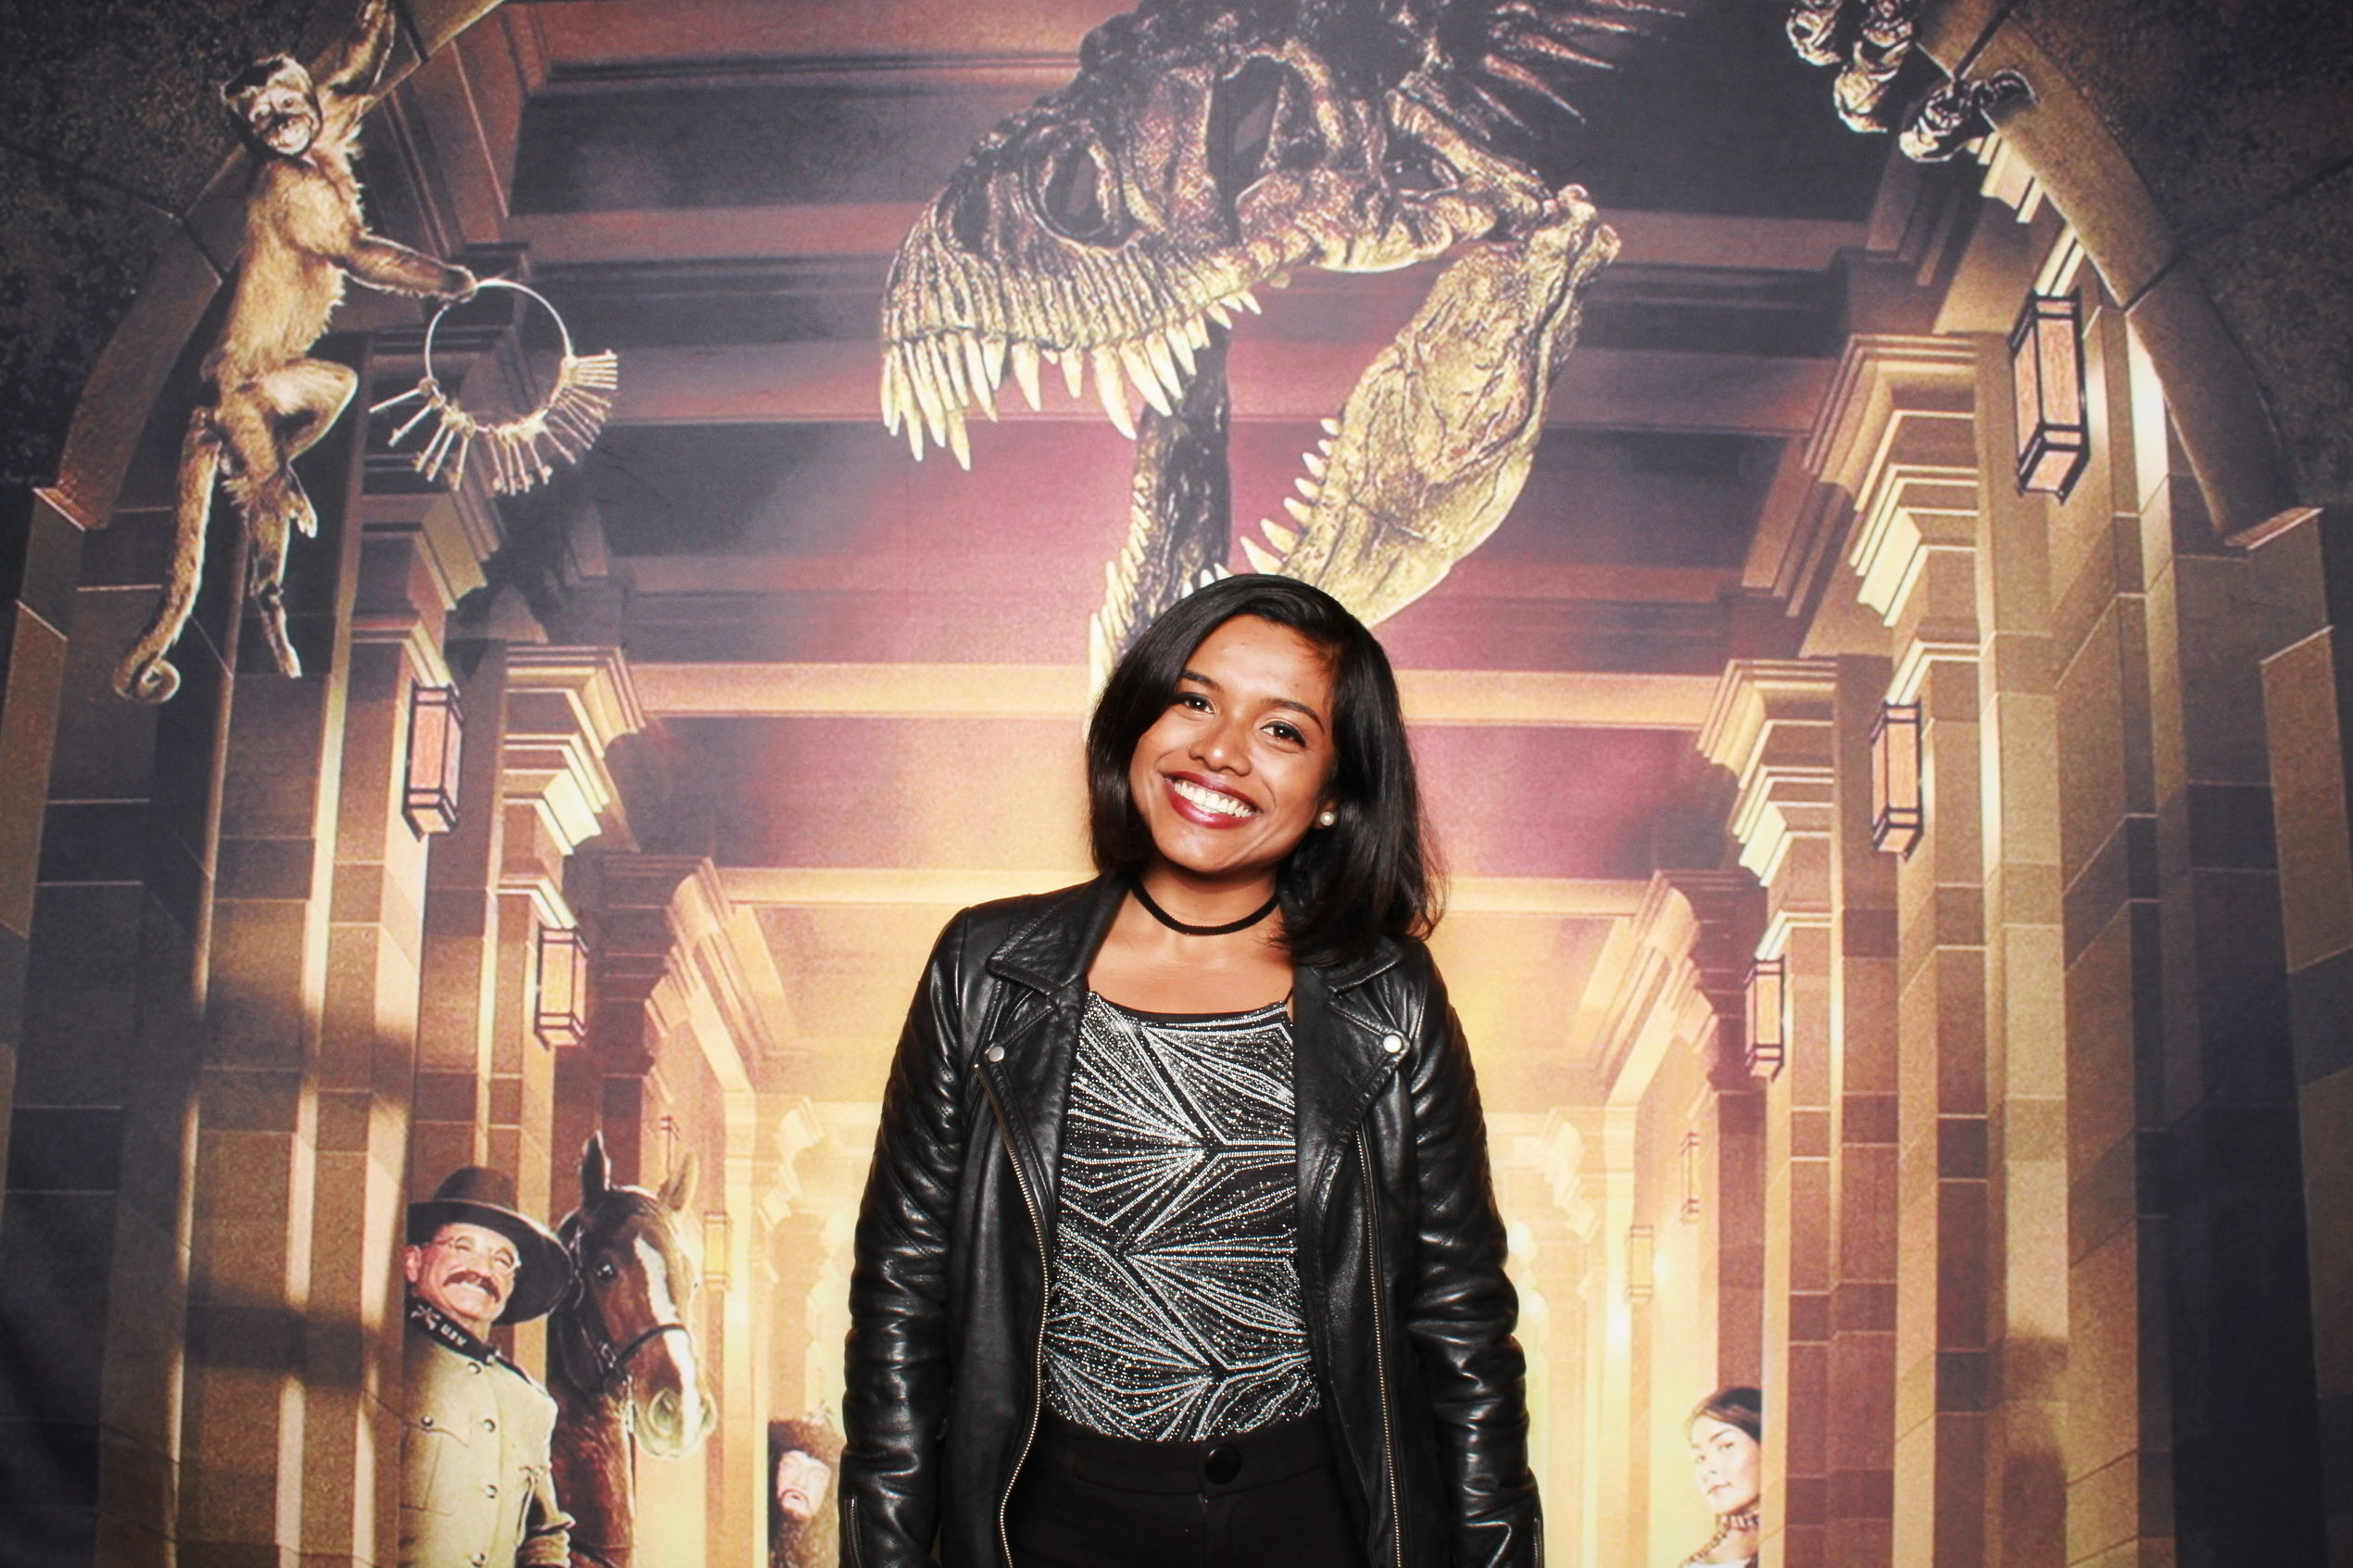 Night at the Museum backdrop